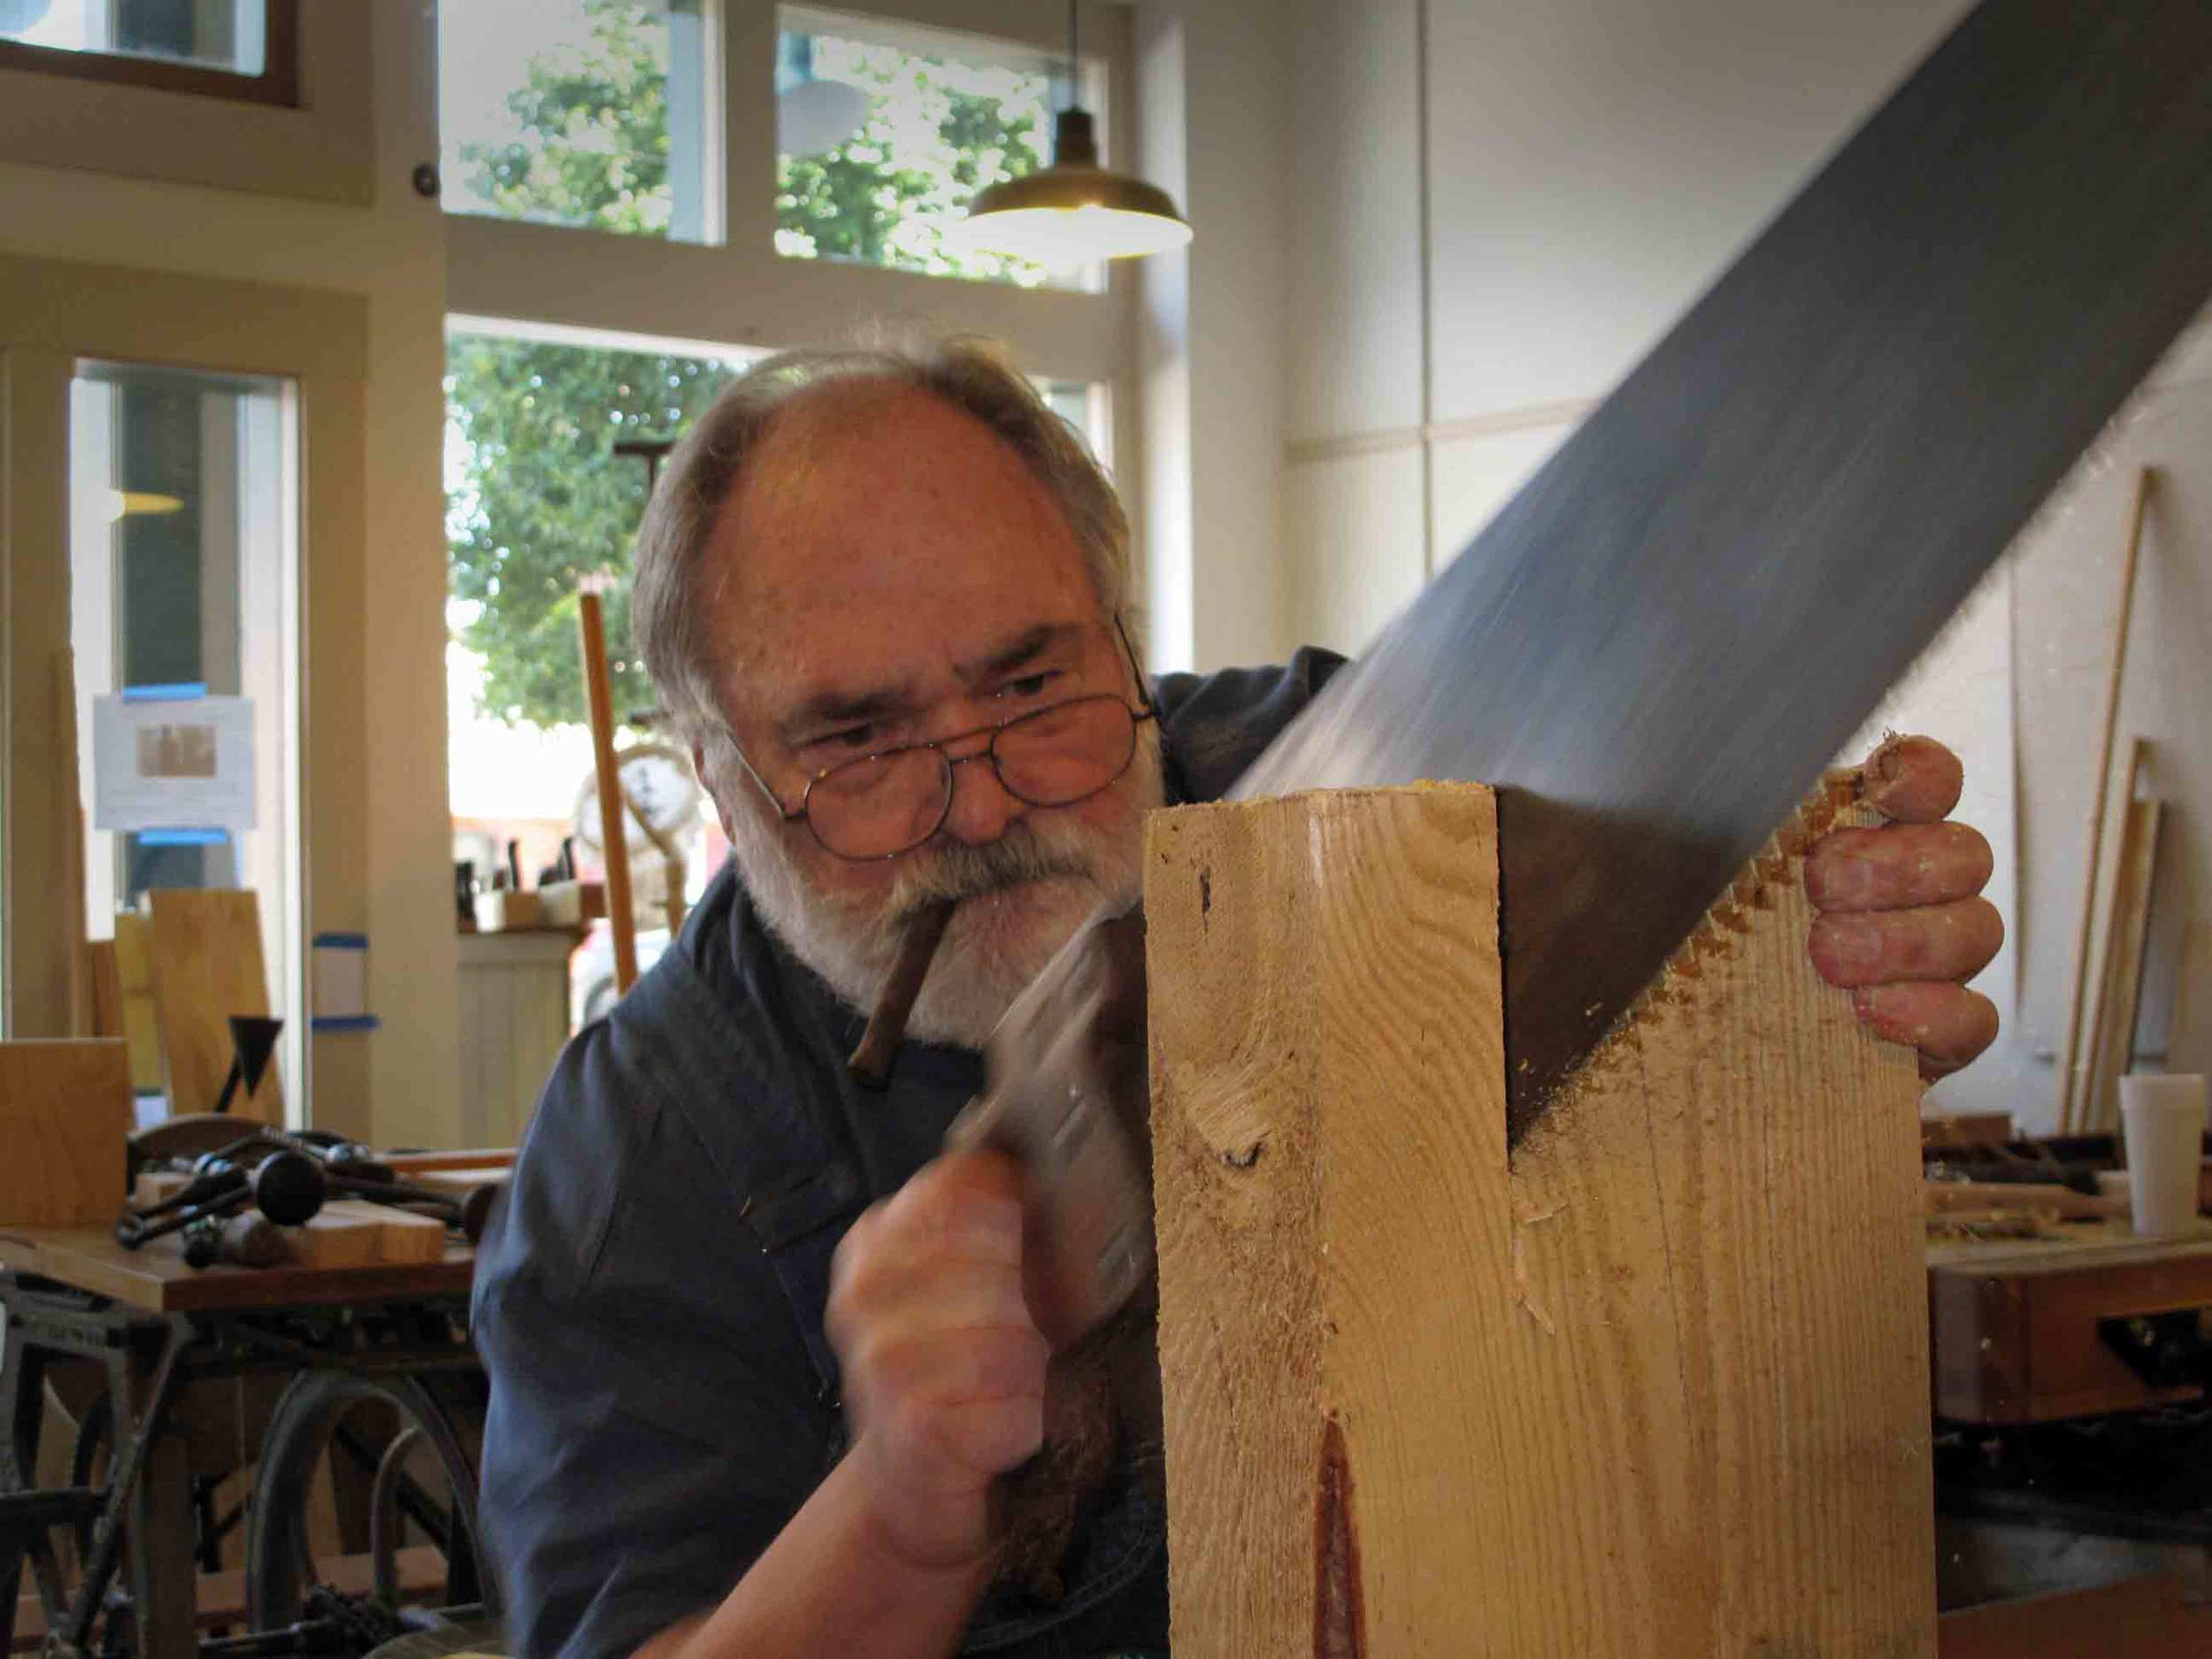 Student-saws-with-cigar.jpg